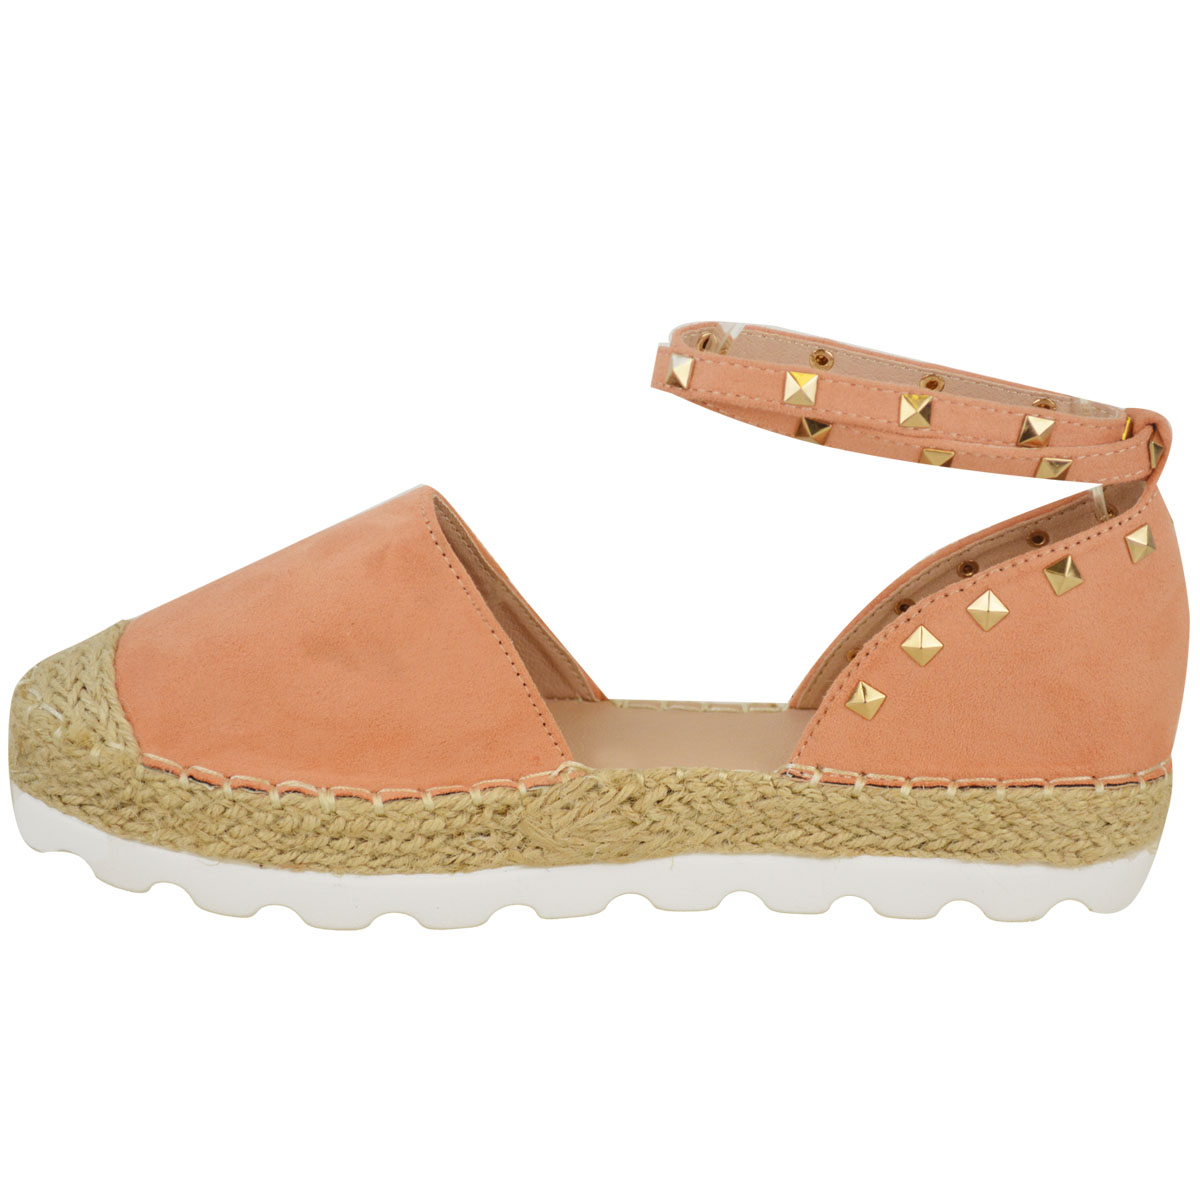 Womens-Ladies-Espadrilles-Flat-Pom-Pom-Sandals-Slip-On-Strappy-Comfy-Size-Shoes thumbnail 4